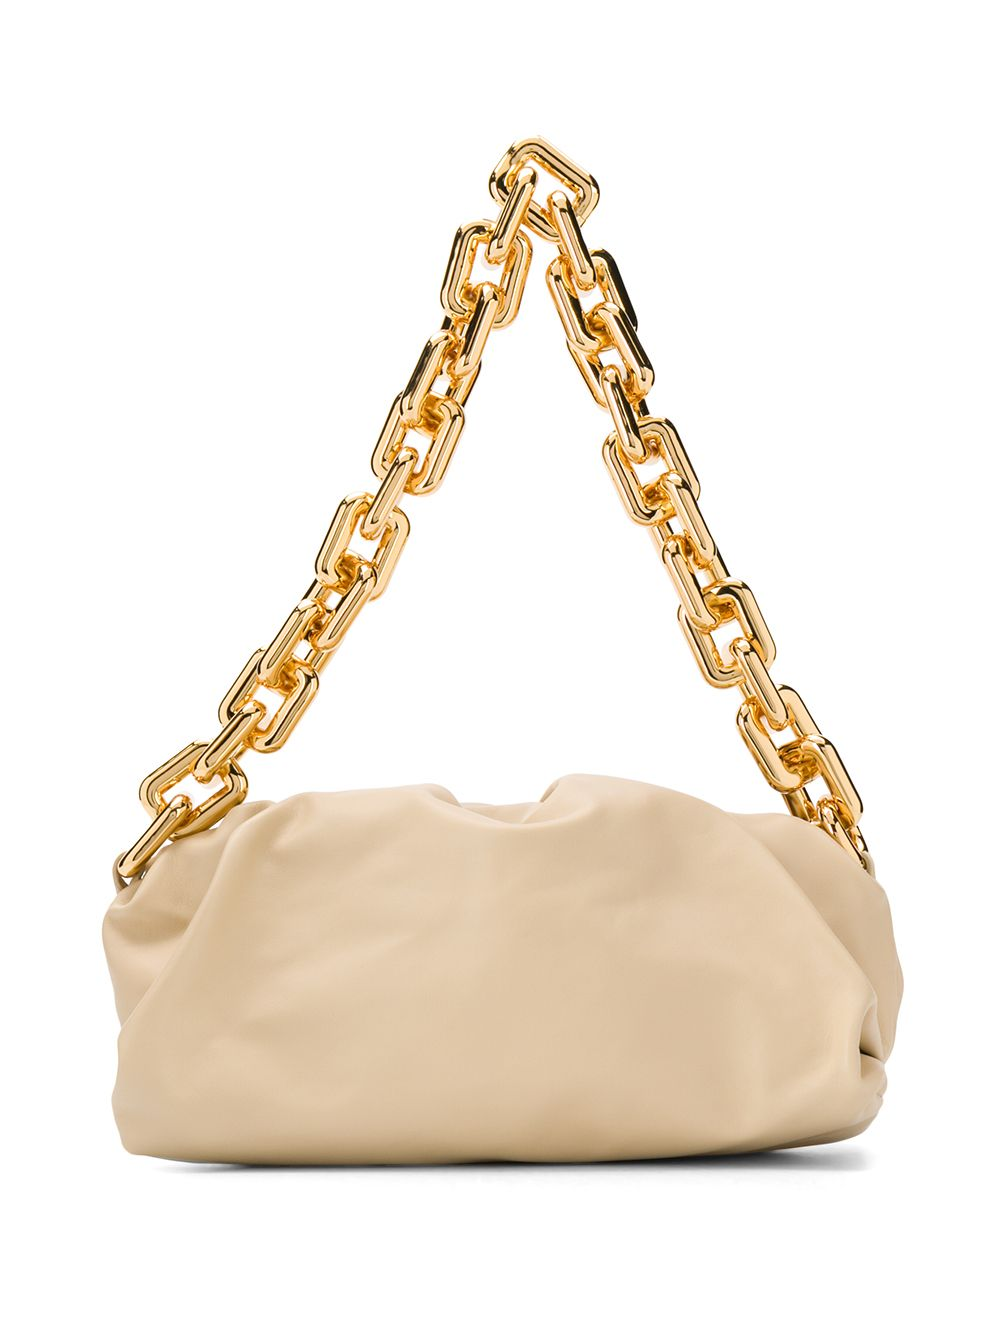 The Chain Pouch Leather Clutch